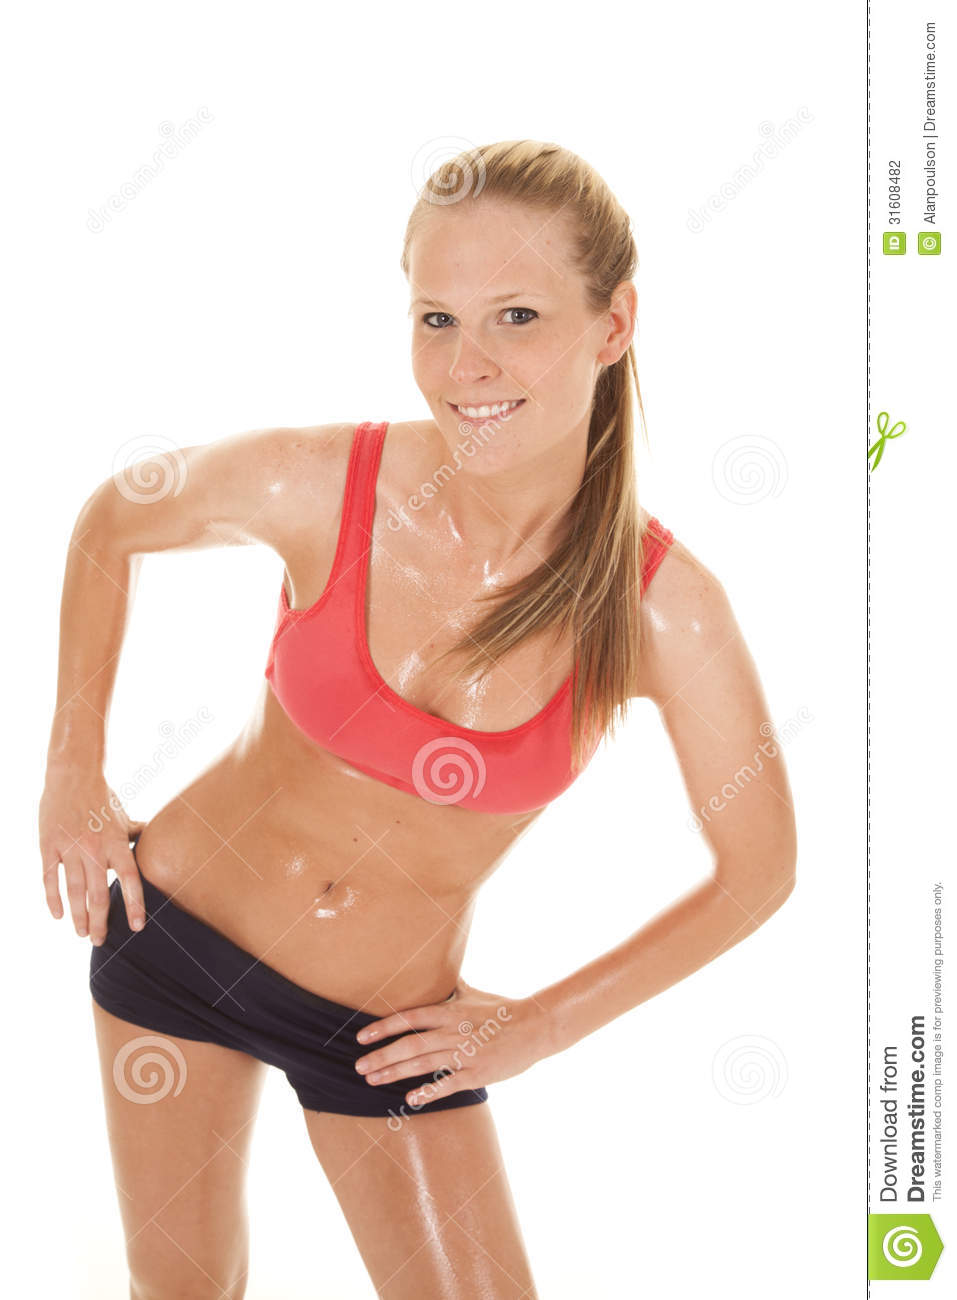 Woman Fitness Red Sports Bra Sweat Lean Stock Photo ...